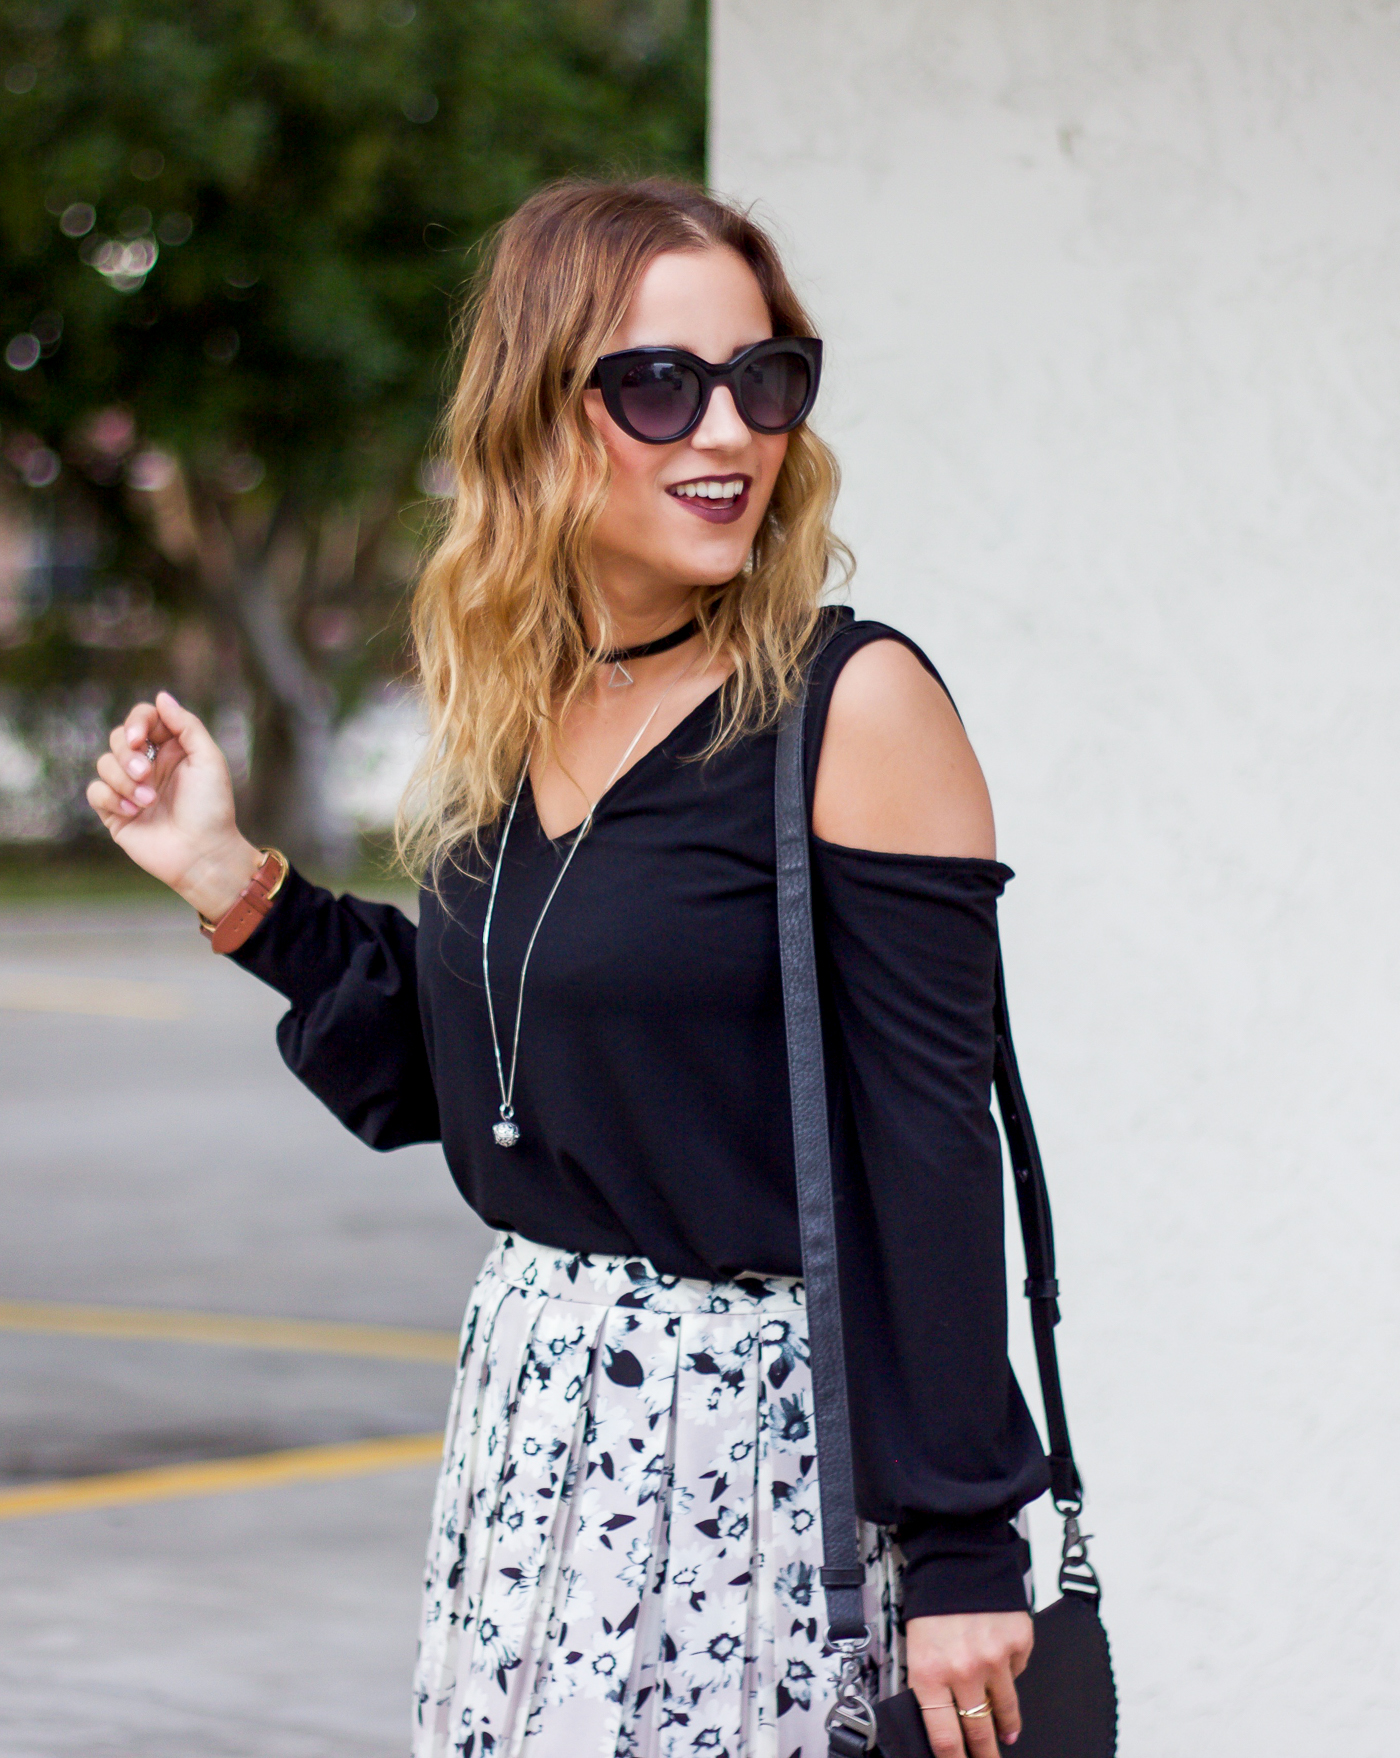 Jackie Goldhar is a Canadian fashion blogger, who's wearing a black v-neck cold shoulder tee from Express and Kate Spade sunglasses